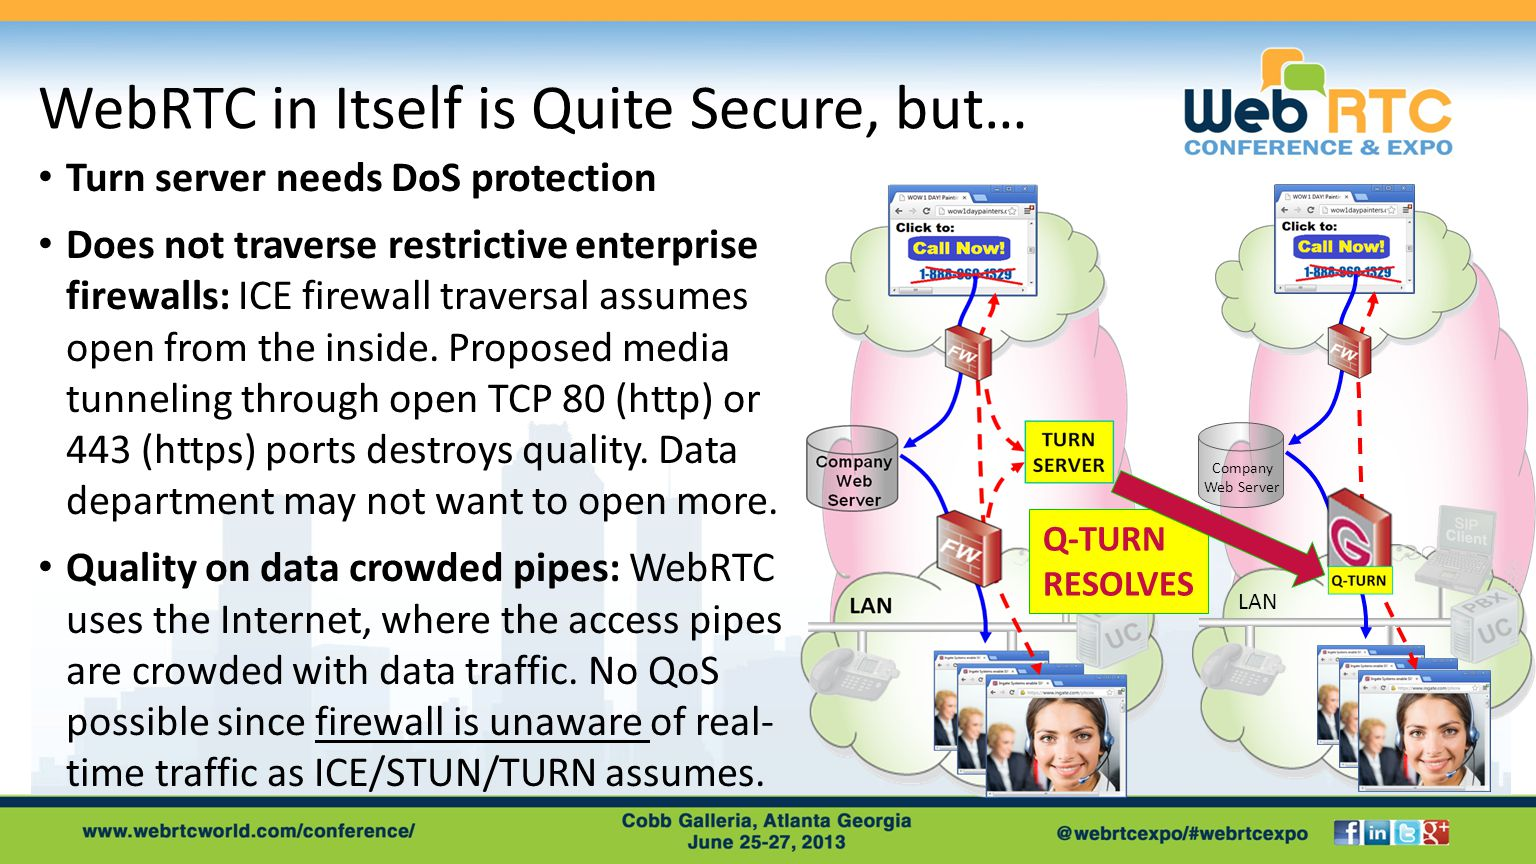 A Novel View on ICE – Q-TURN Knock-knock; Give my Media a Quality Pipe Regard ICE as a request for real-time traffic through the Firewall.